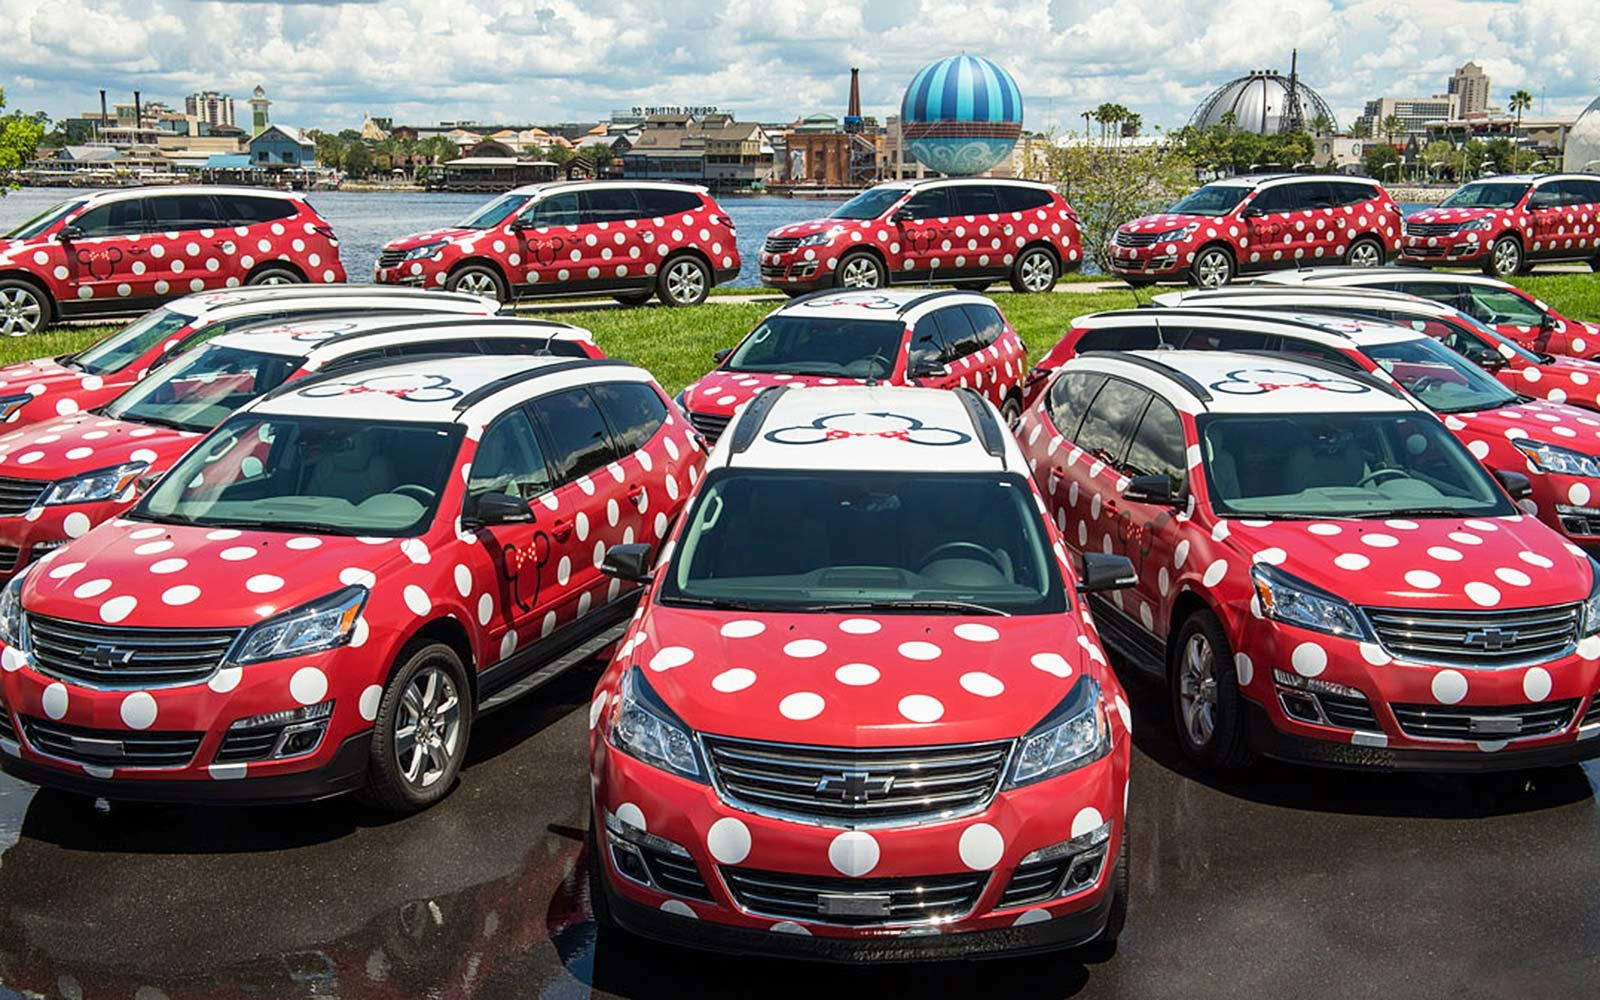 Lyft Minnie Vans Car Service Disney World Resort Florida